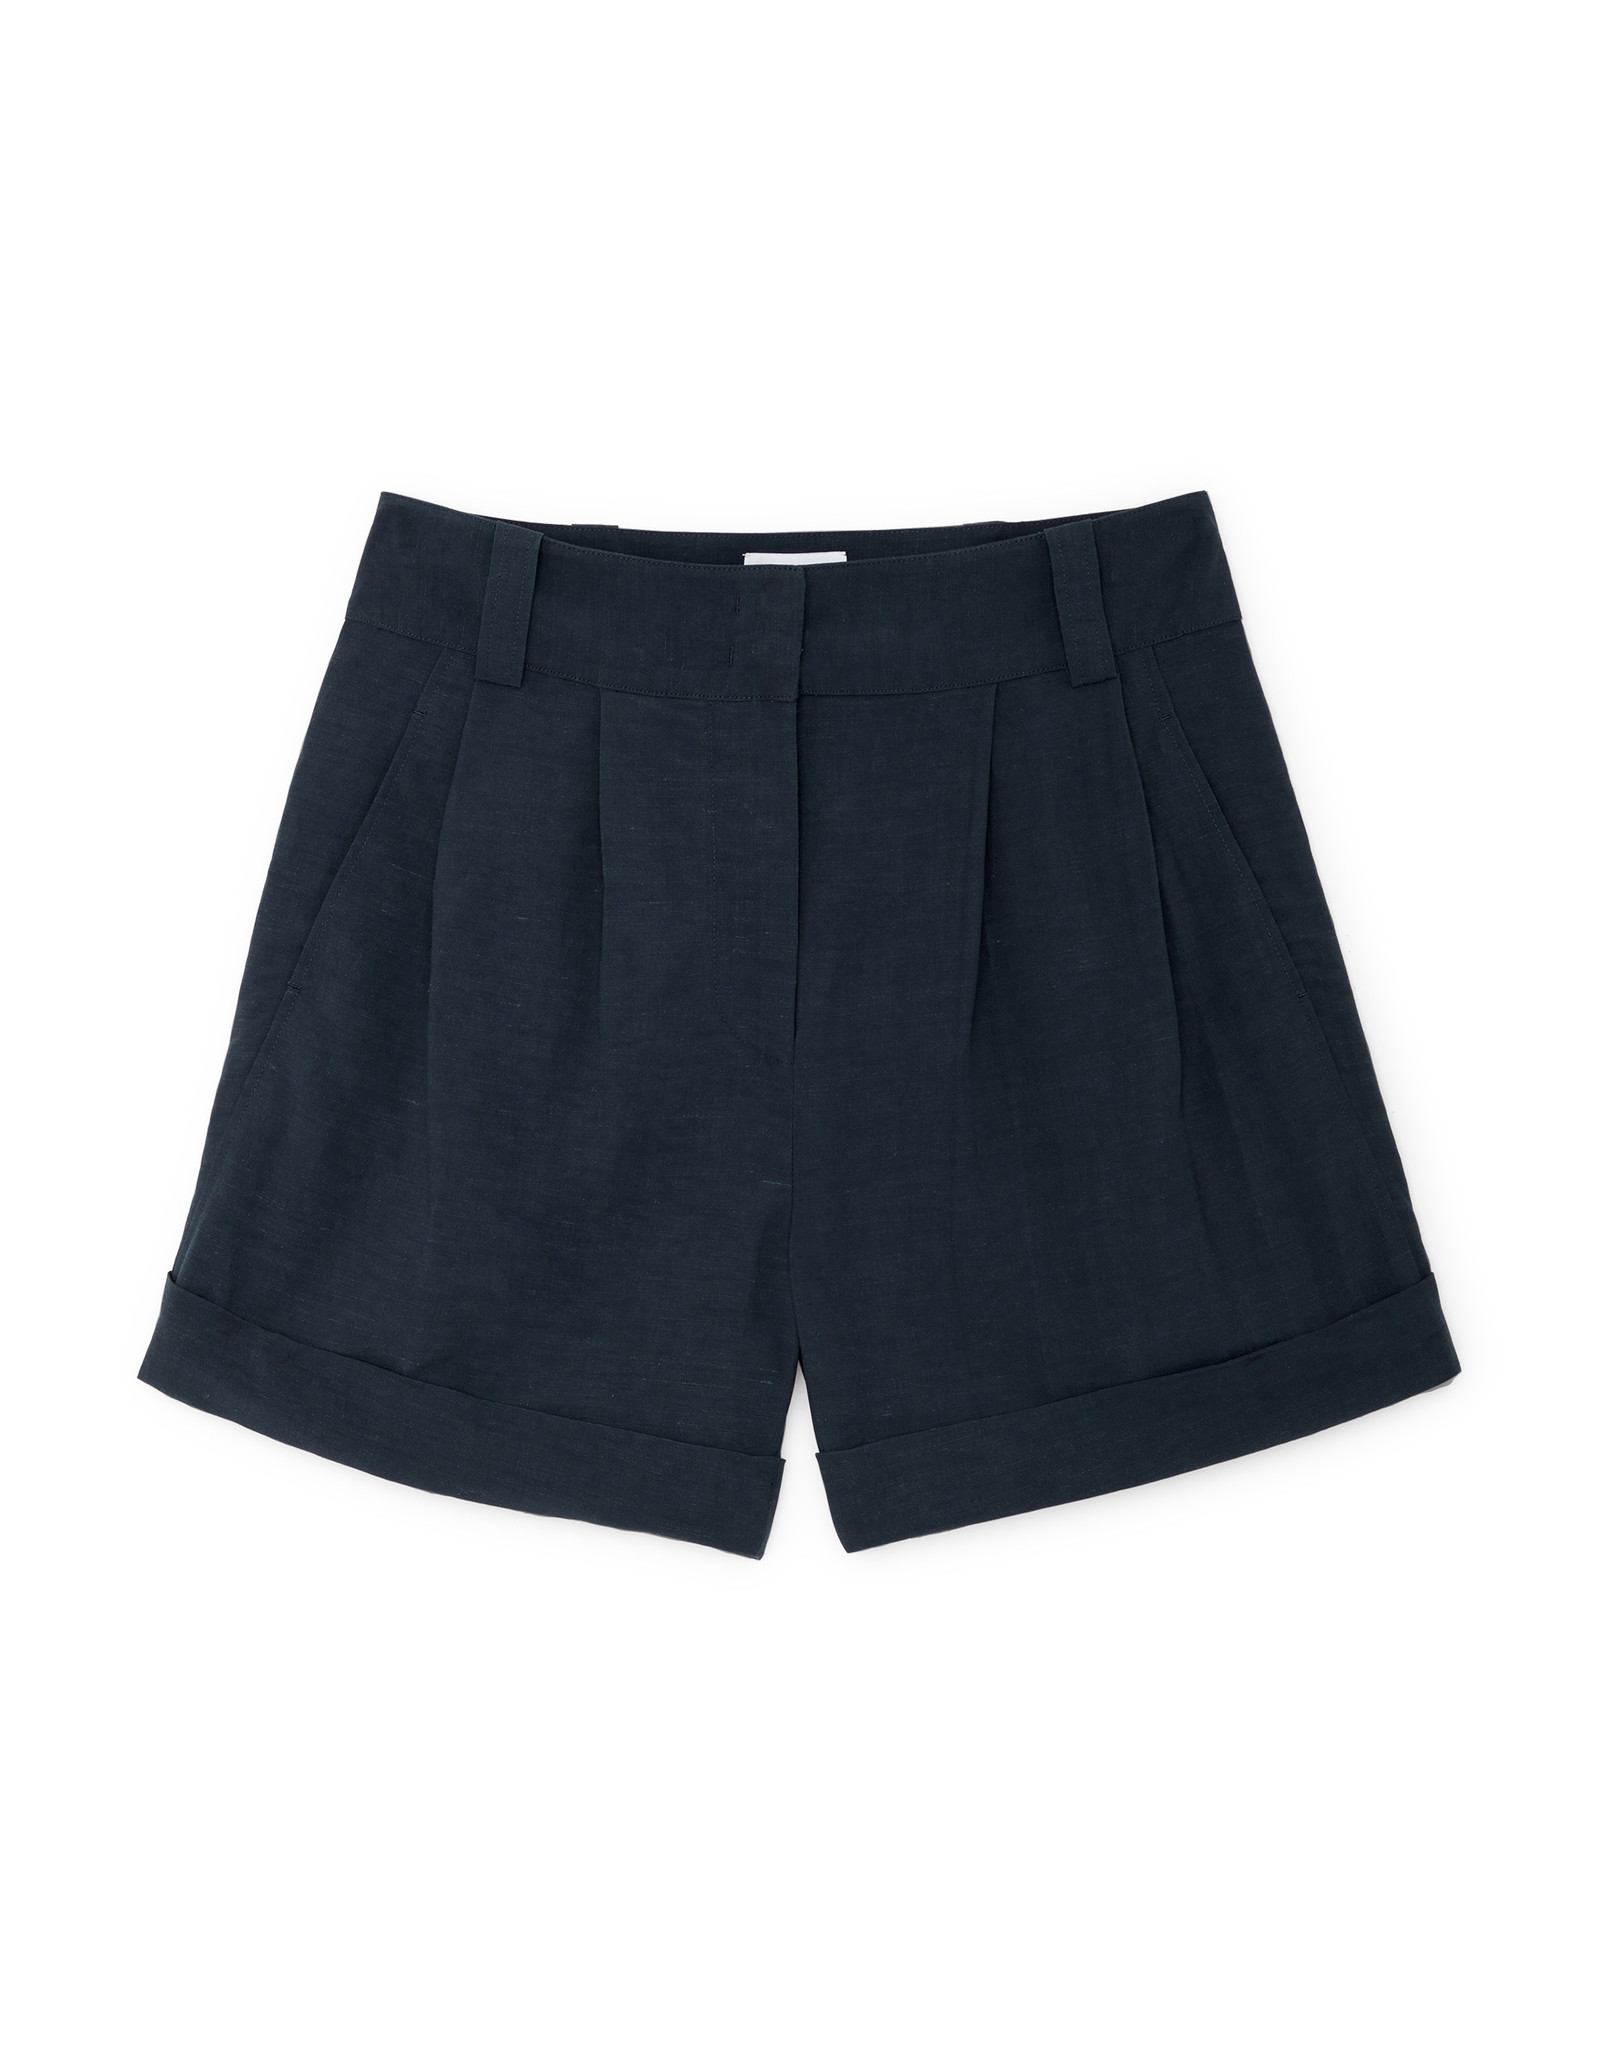 G. Label G. Label Marty High Waist Short (Color: Navy, Size: 4)